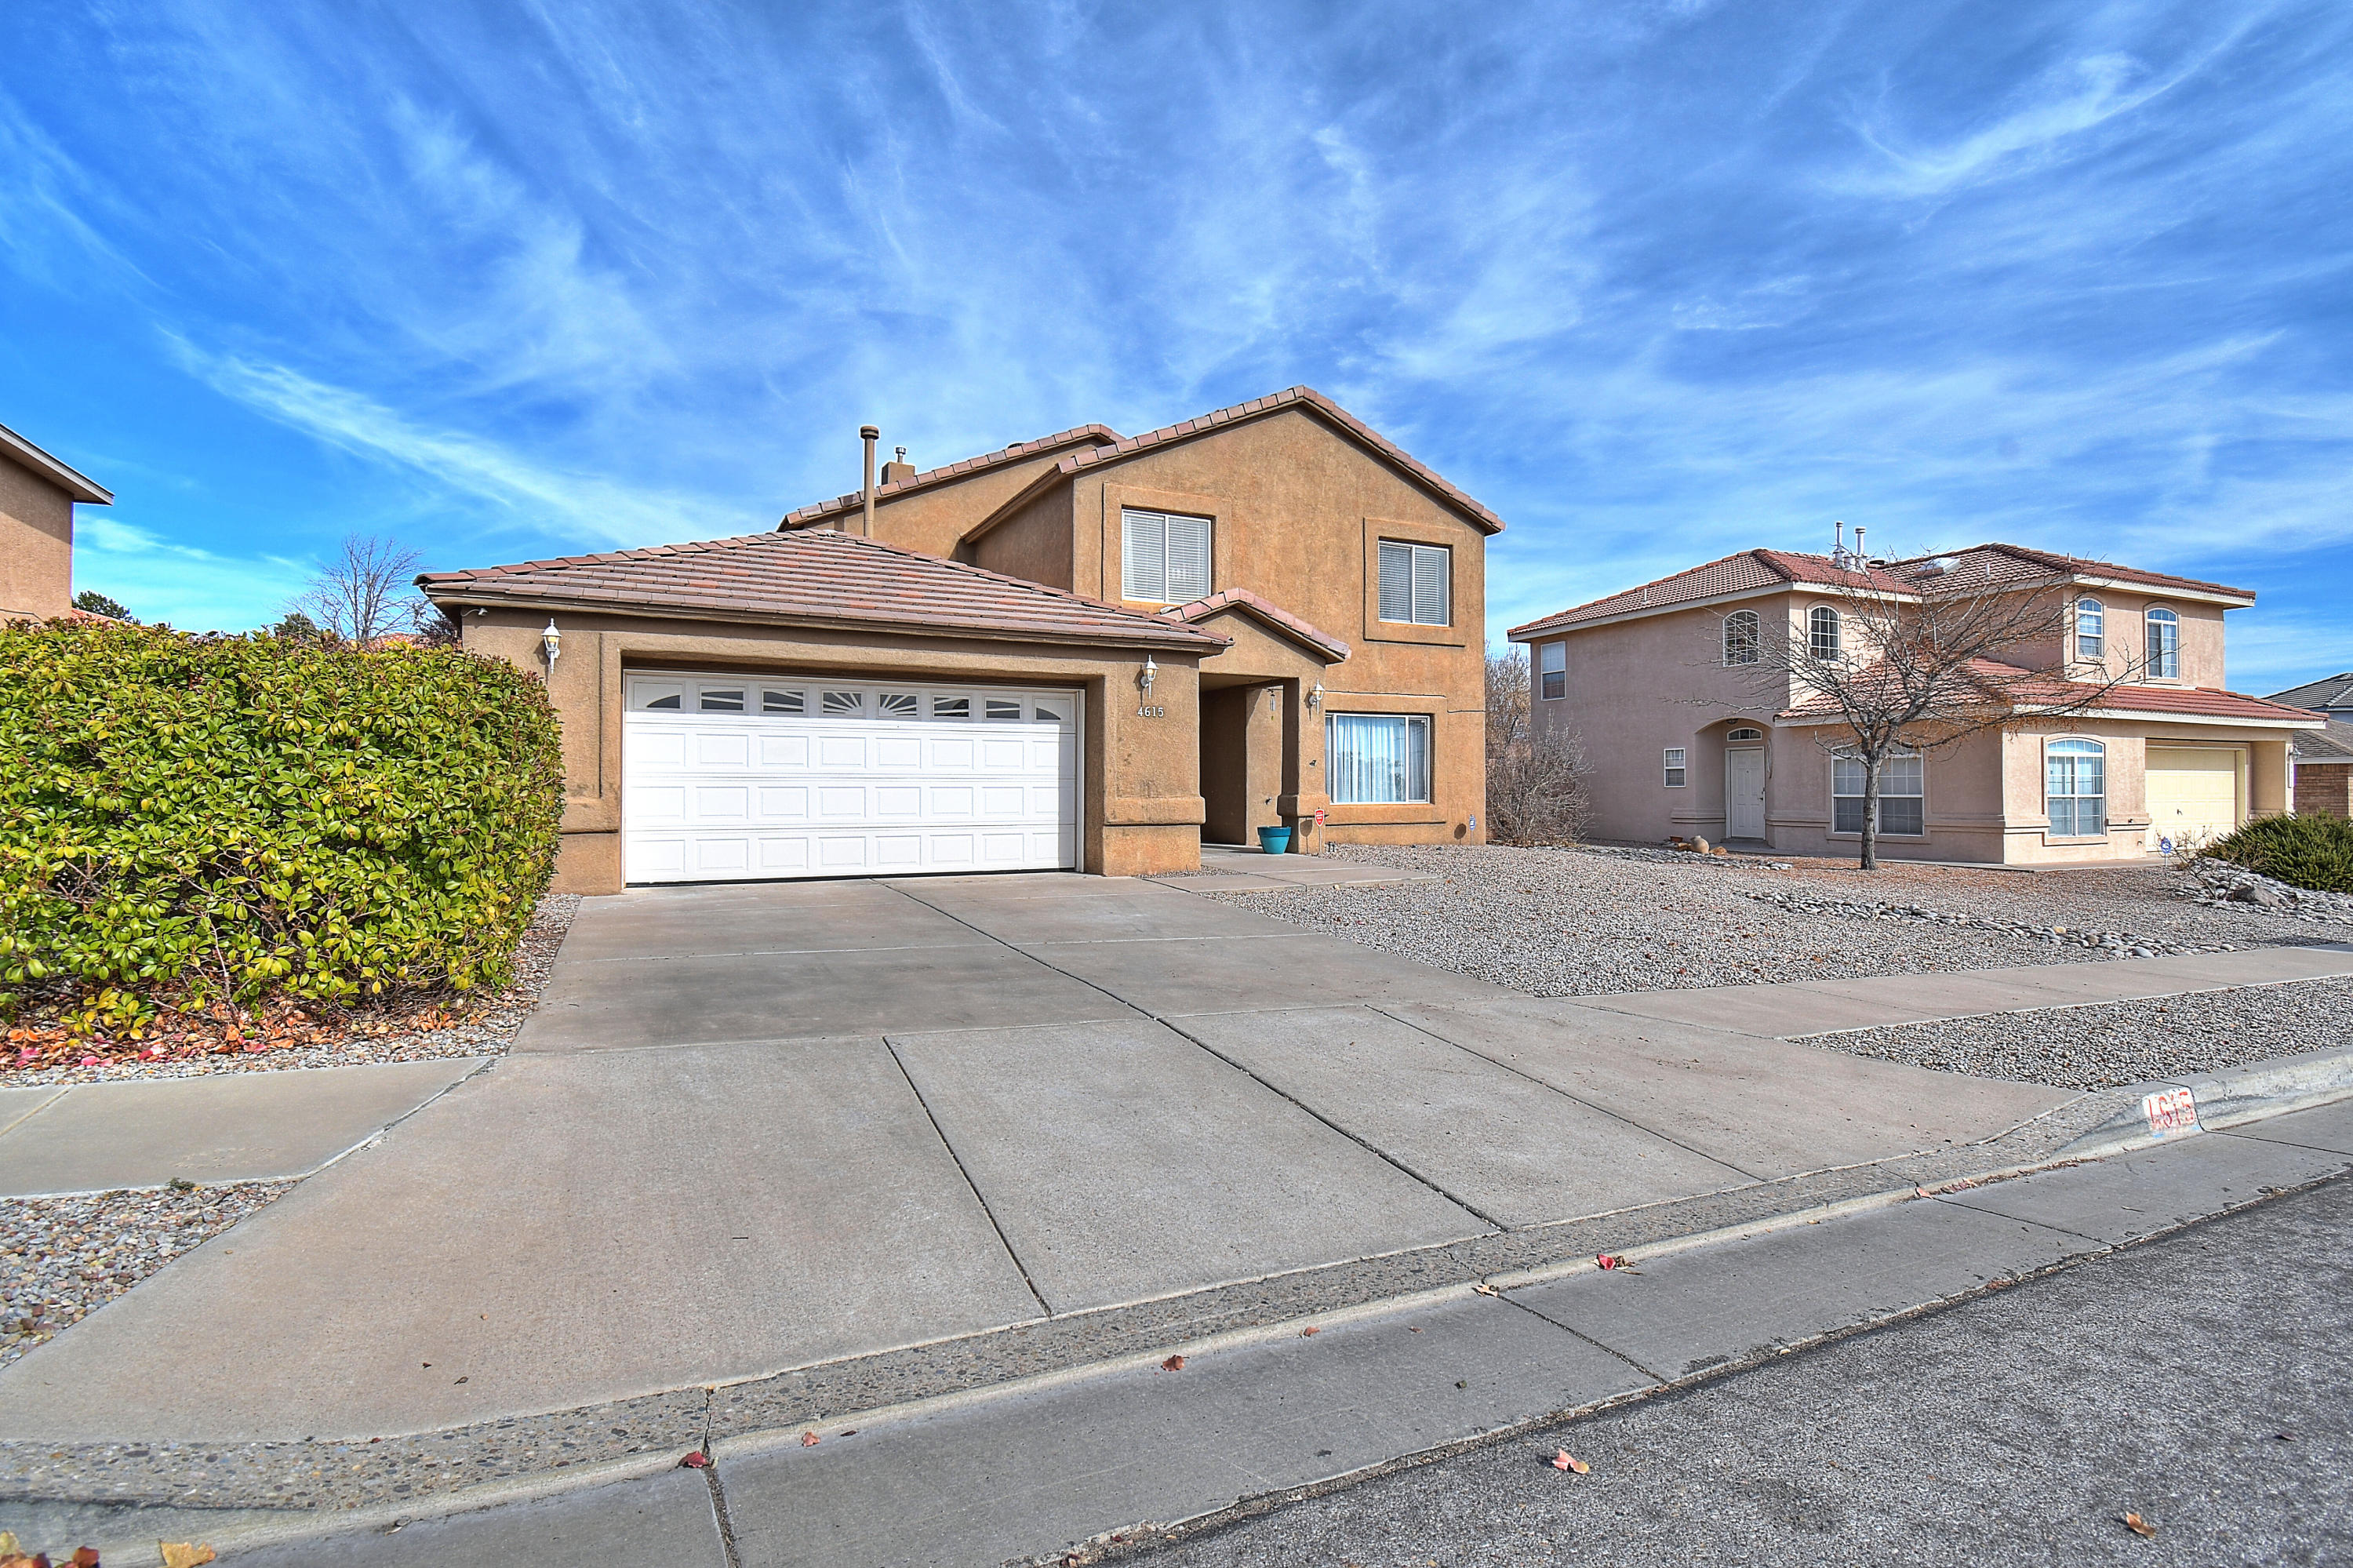 Come make this beautifully appointed home yours!As you enter you will immediately amazed by this meticulously kept home. The home features an open concept kitchen with stainless steal appliances leading into a large living room with vaulted ceilings that is perfect for entertaining guest. Your new home also comes complete with newly updated bathrooms and new flooring. Enjoy the additional space in your second living room perfect for get togethers and game day. Upstairs you will find a large master bedroom with an oversized bathroom  and balcony. Down the hall are two additional bedrooms overlooking the living room.